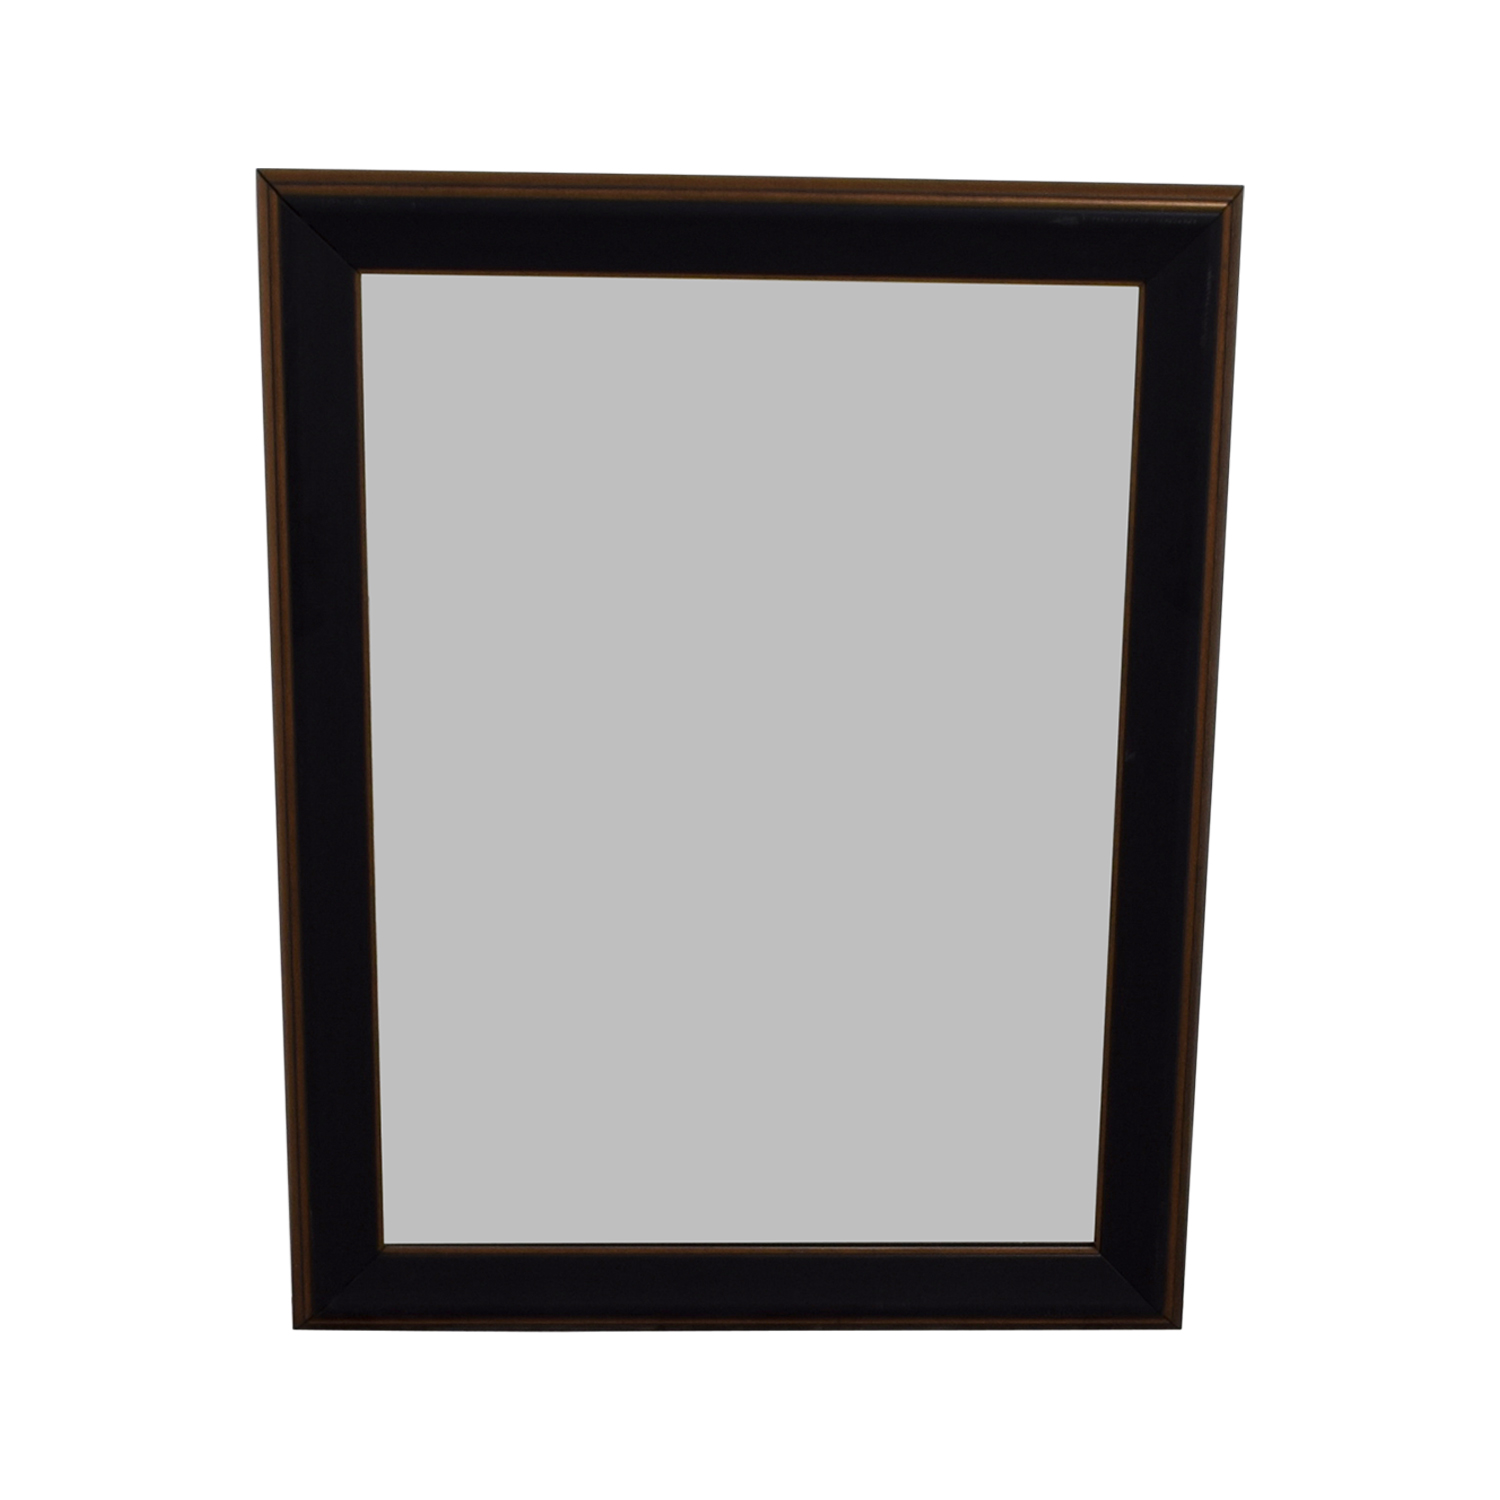 buy Wood Framed Mirror online